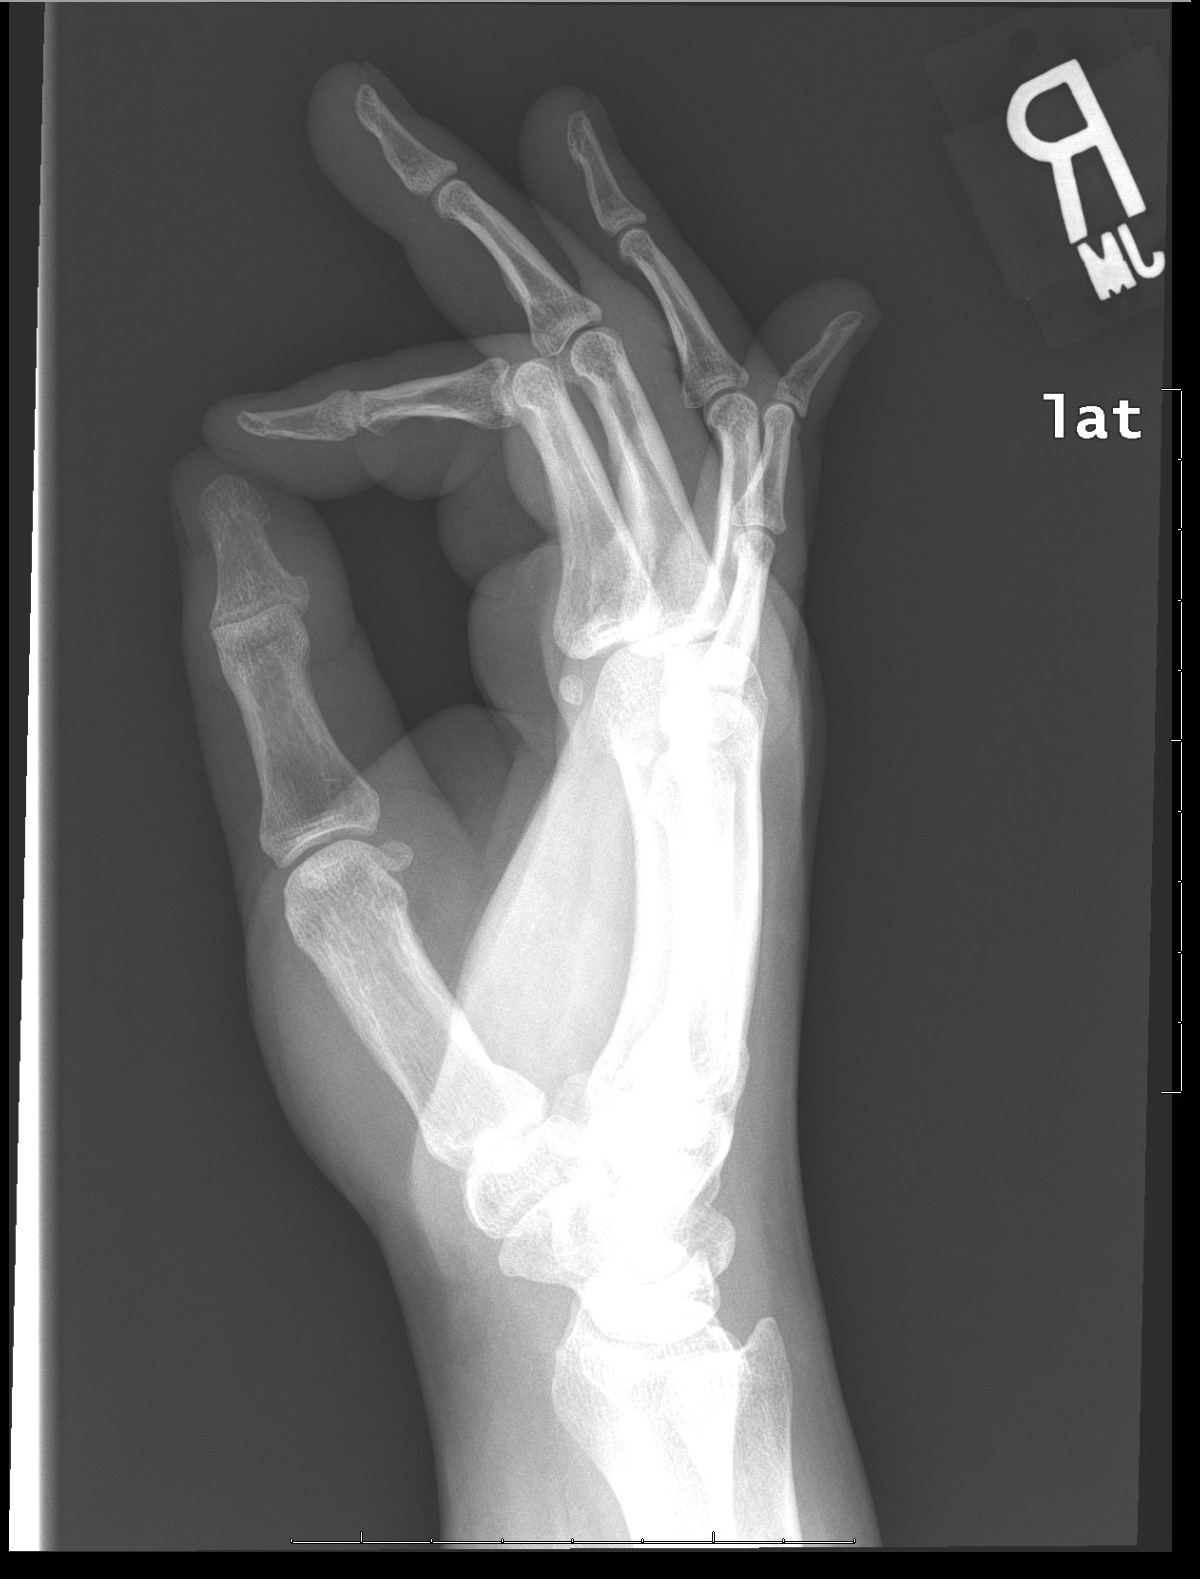 Archive Of Unremarkable Radiological Studies Right Hand X Ray